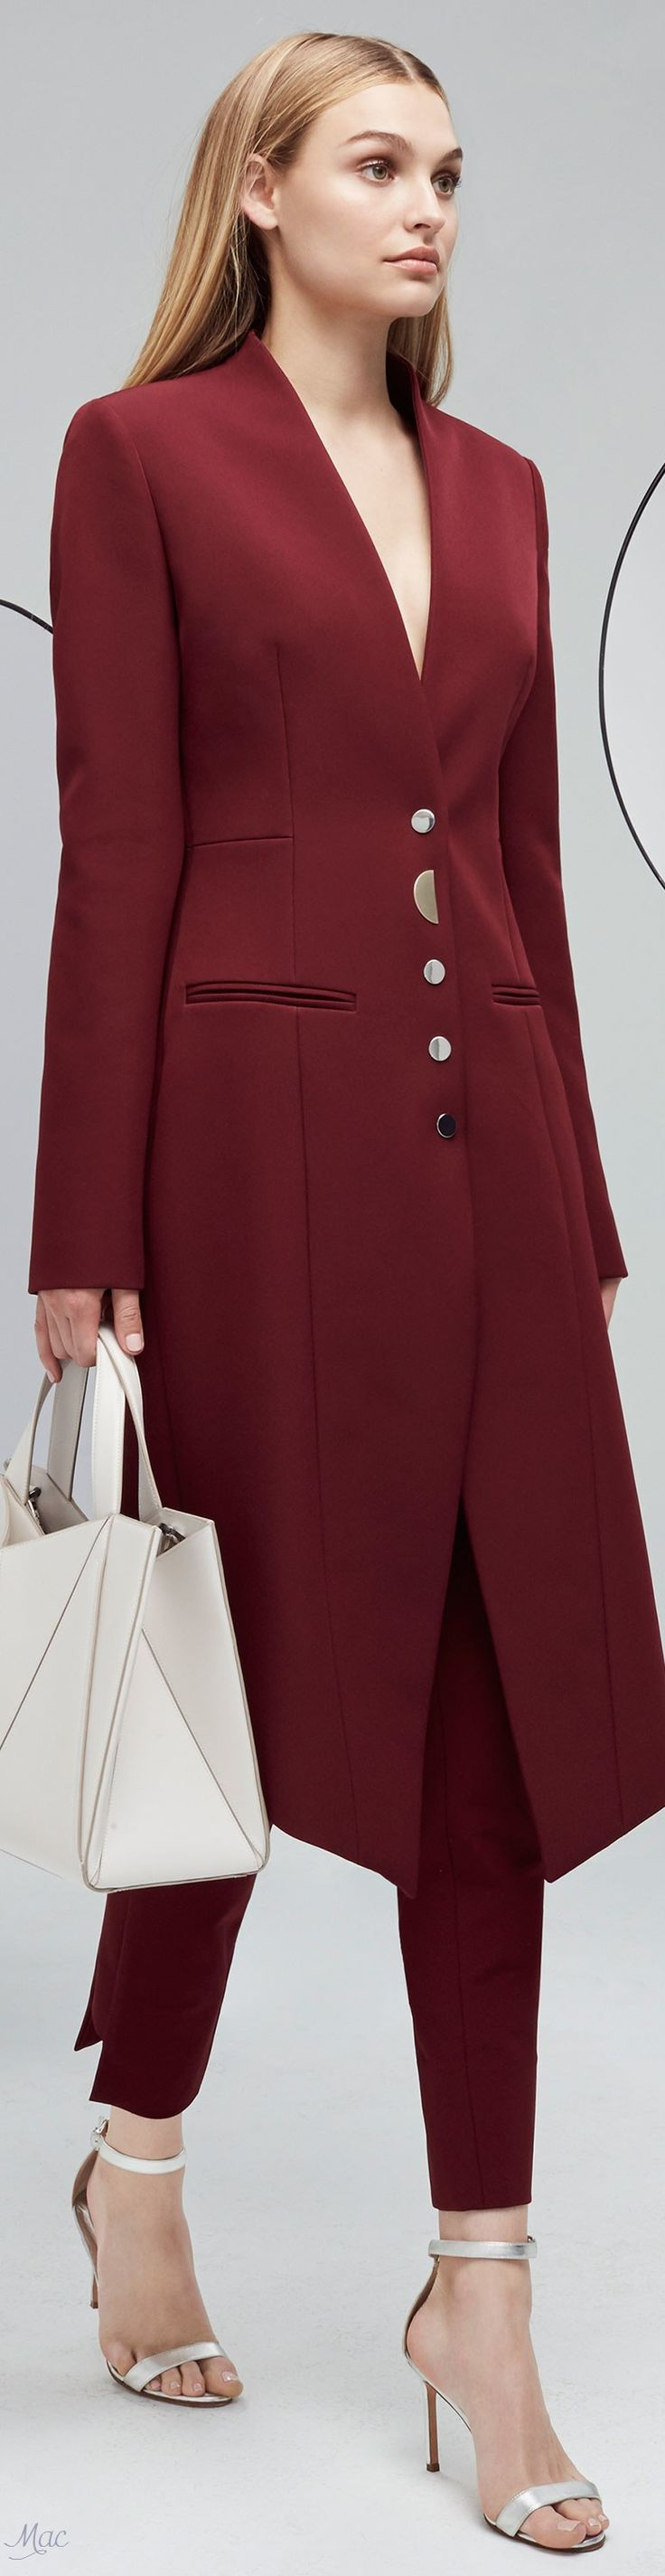 24 Best Plus-Size Professional Clothing for Stylish Women - The Cut Fashionable corporate attire 2018